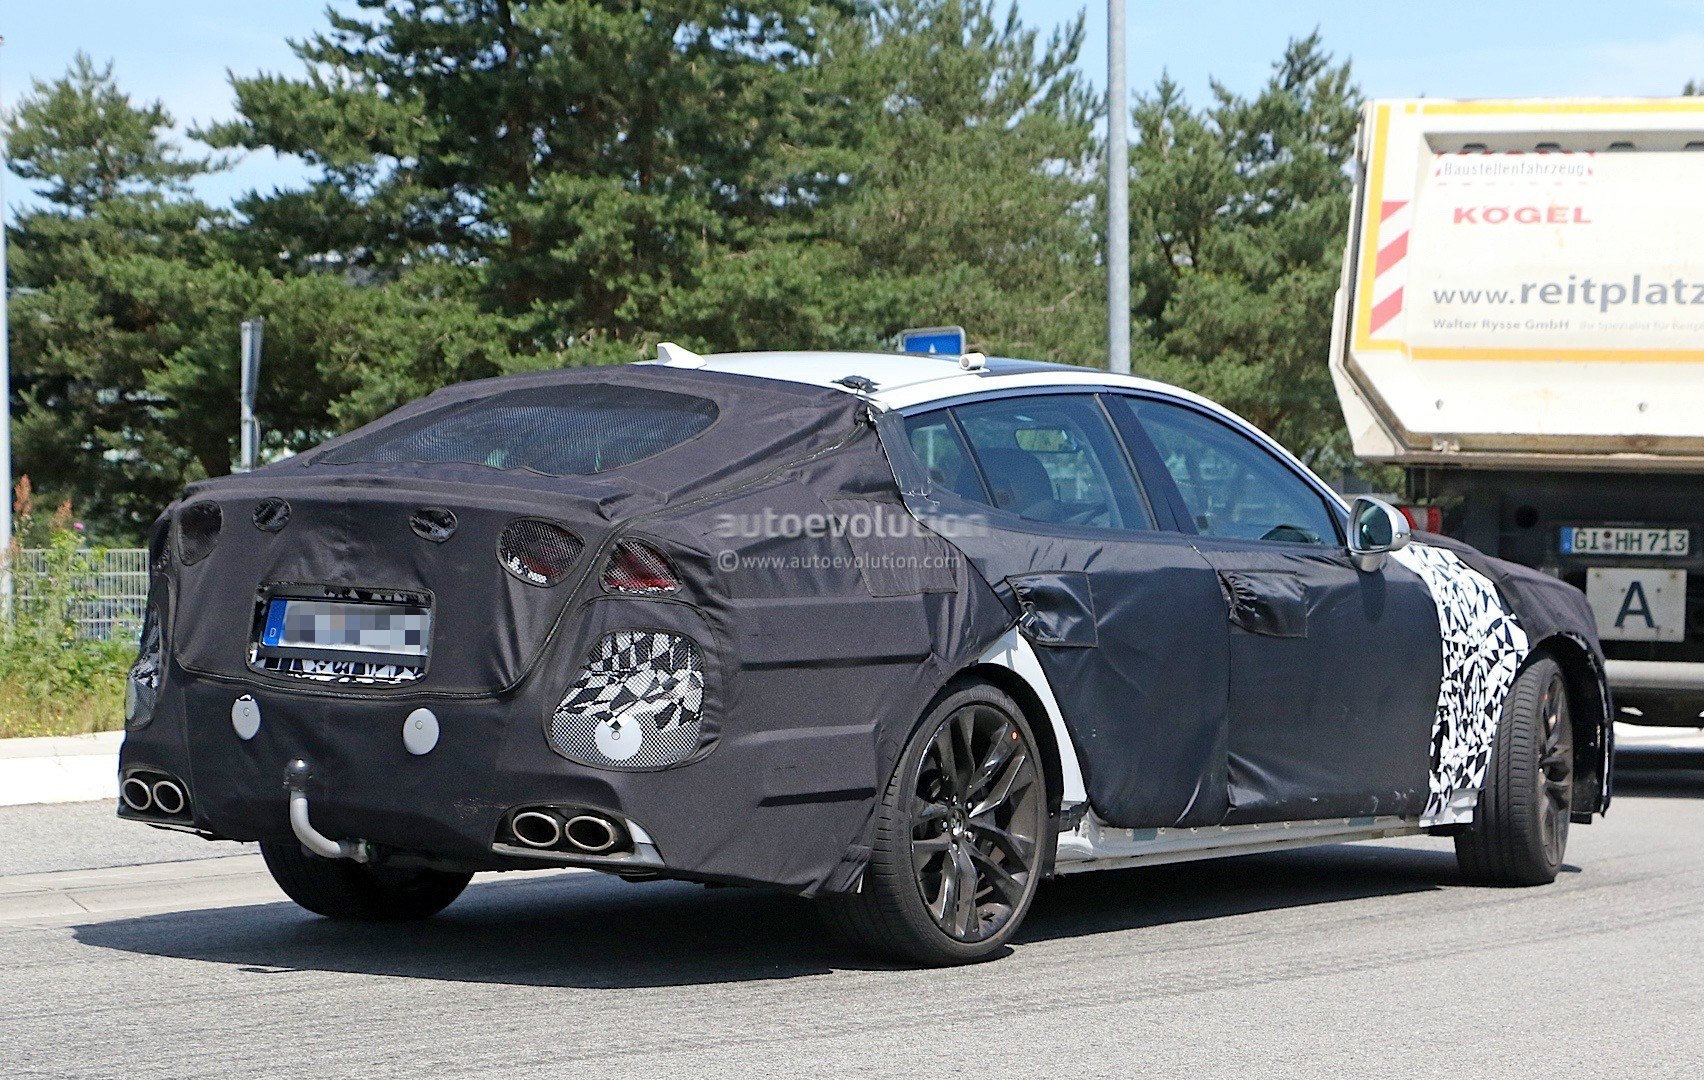 2018-kia-gt-spied-in-germany-could-to-be-called-stinger_9